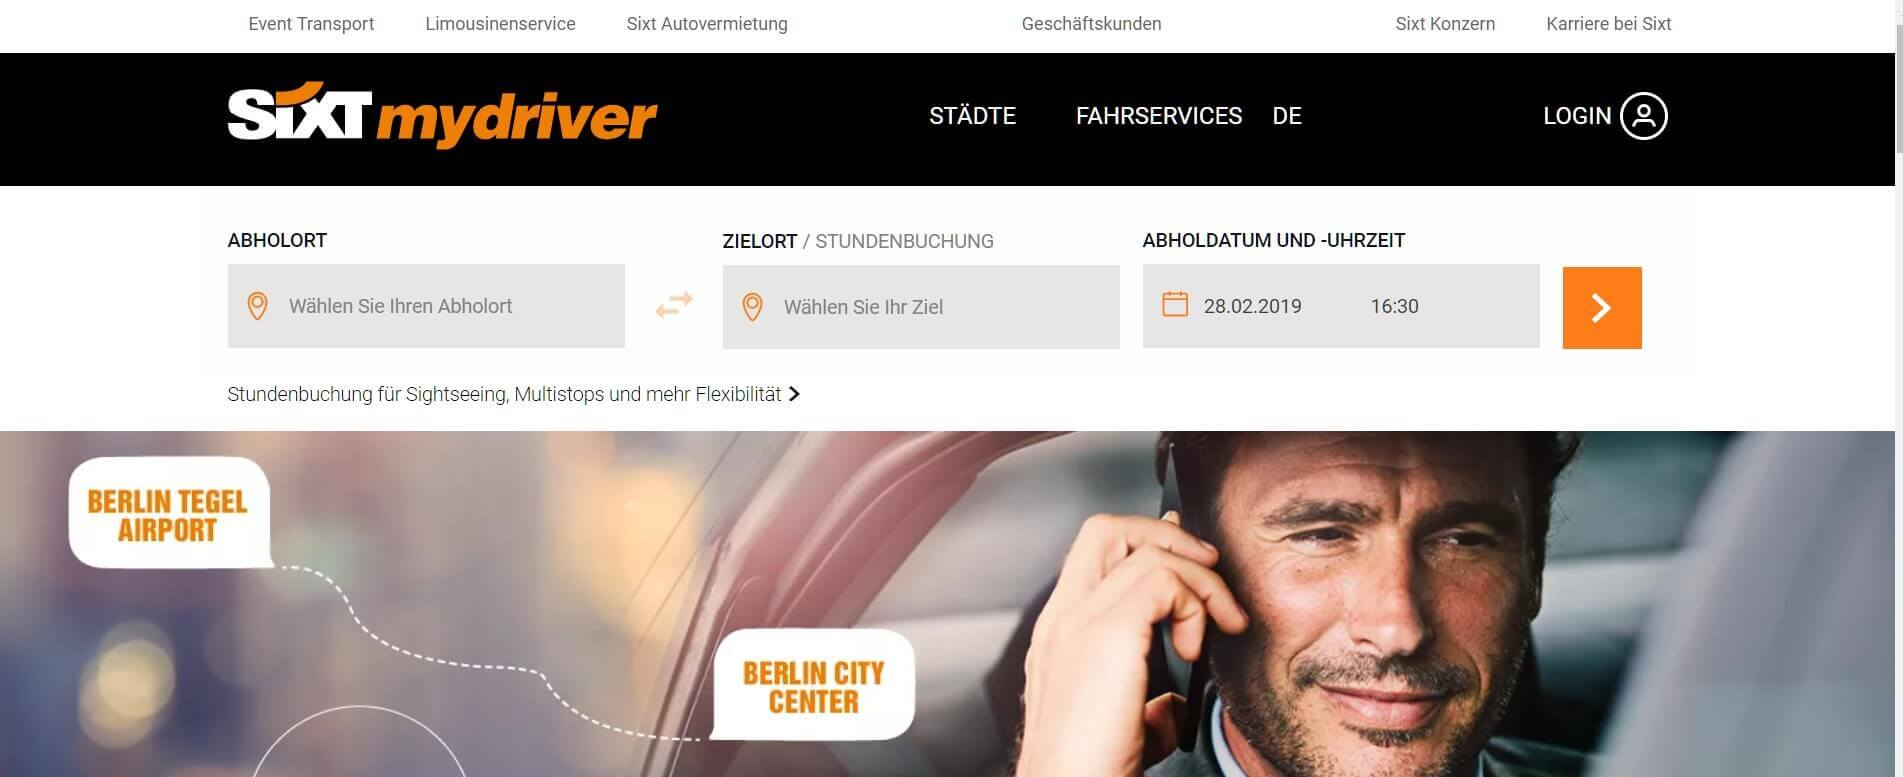 Beste Taxi App Sixt mydriver